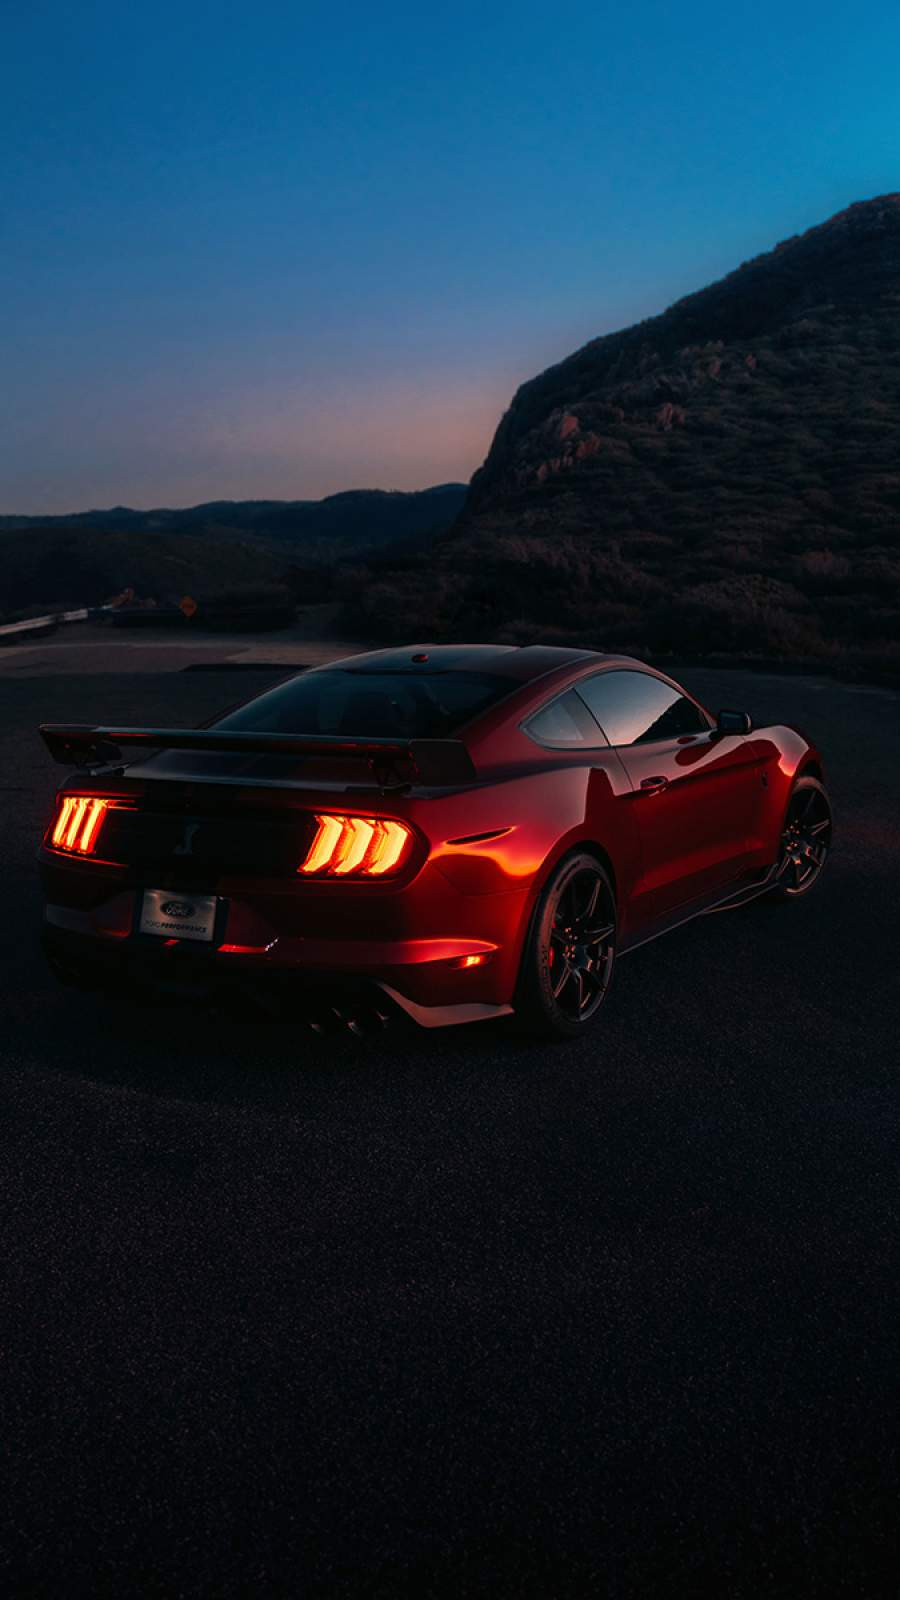 Artistic Quotes Wallpaper Ford Mustang Sunset Iphone Wallpaper Iphone Wallpapers